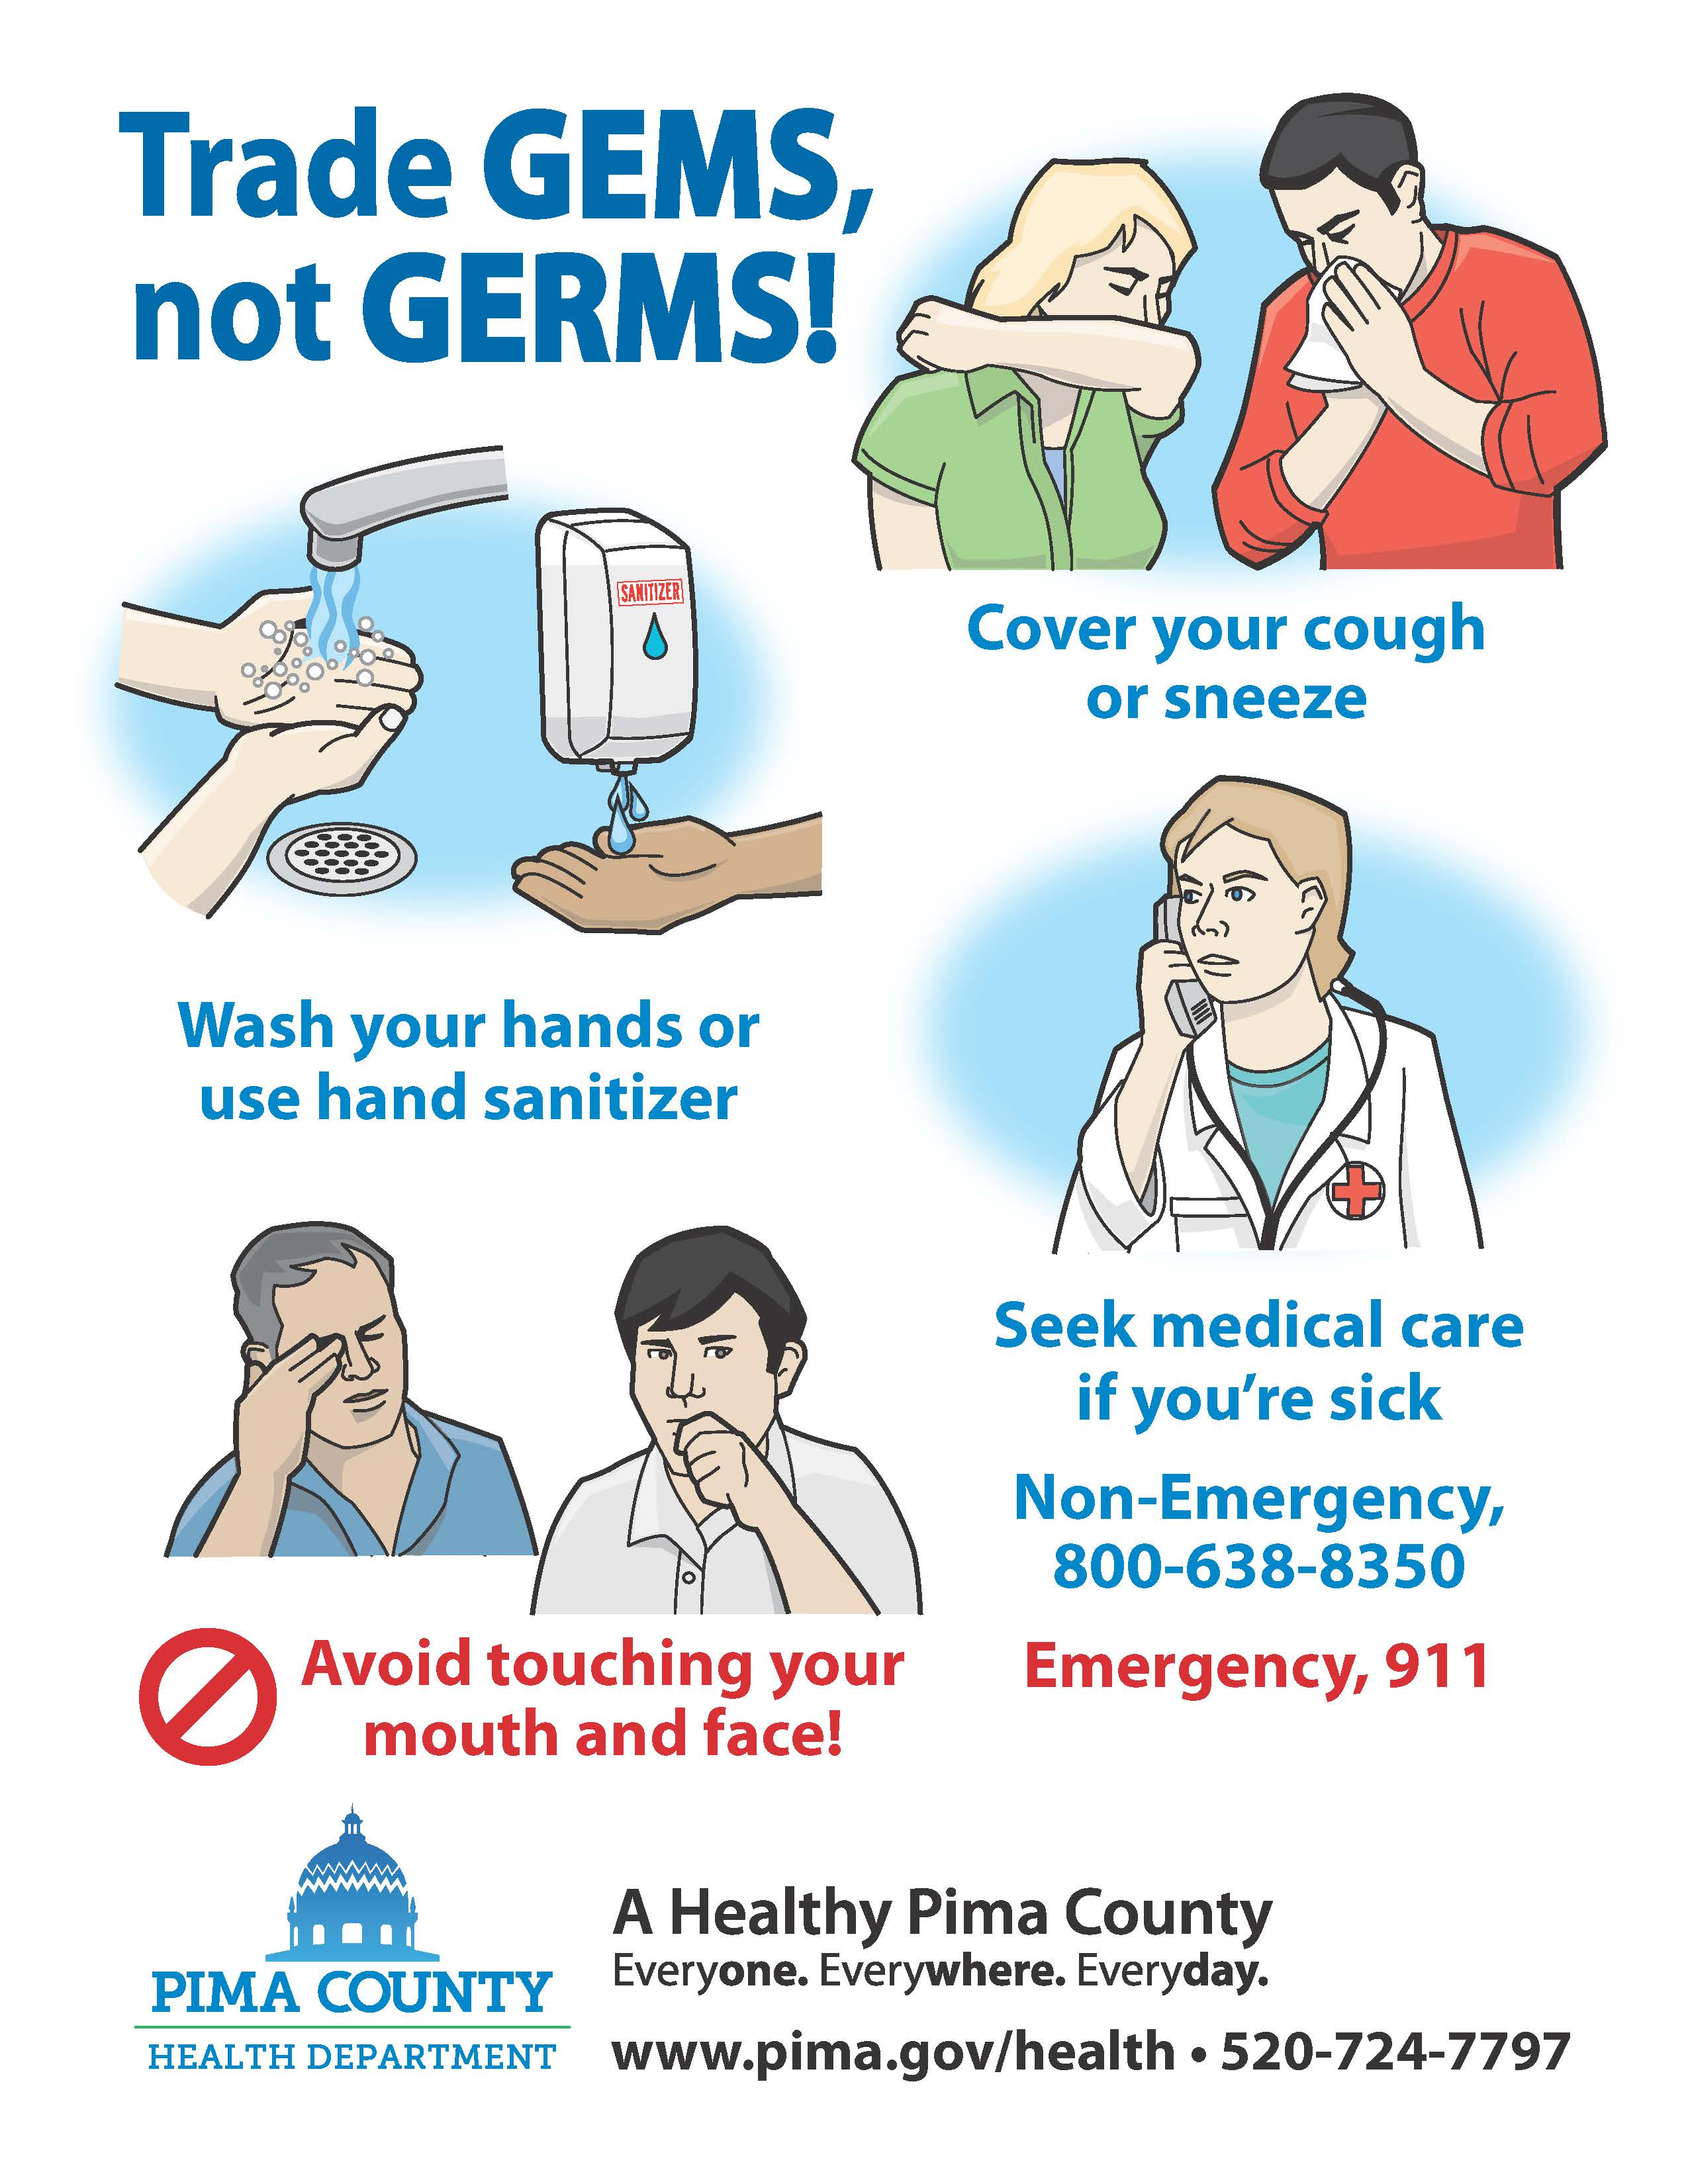 Gems not Germs